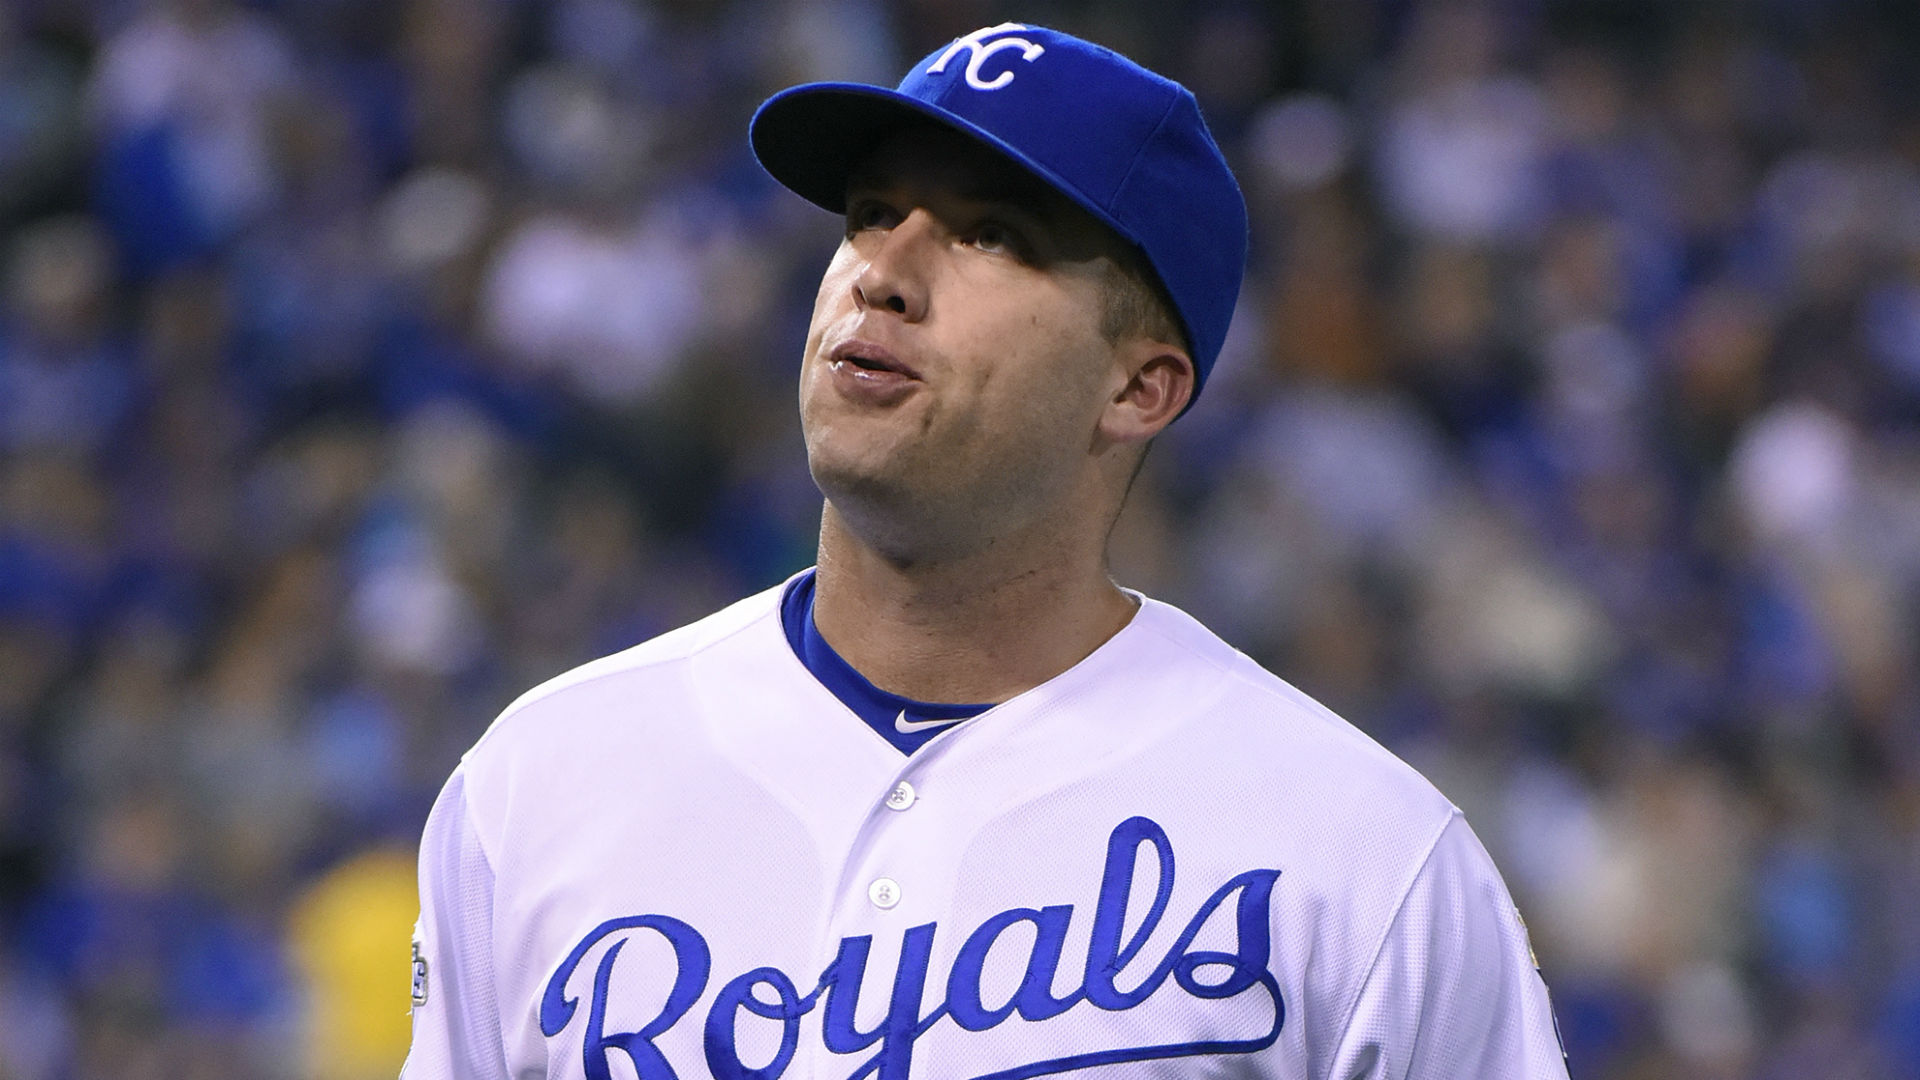 Royals Danny Duufy arrest for DUI